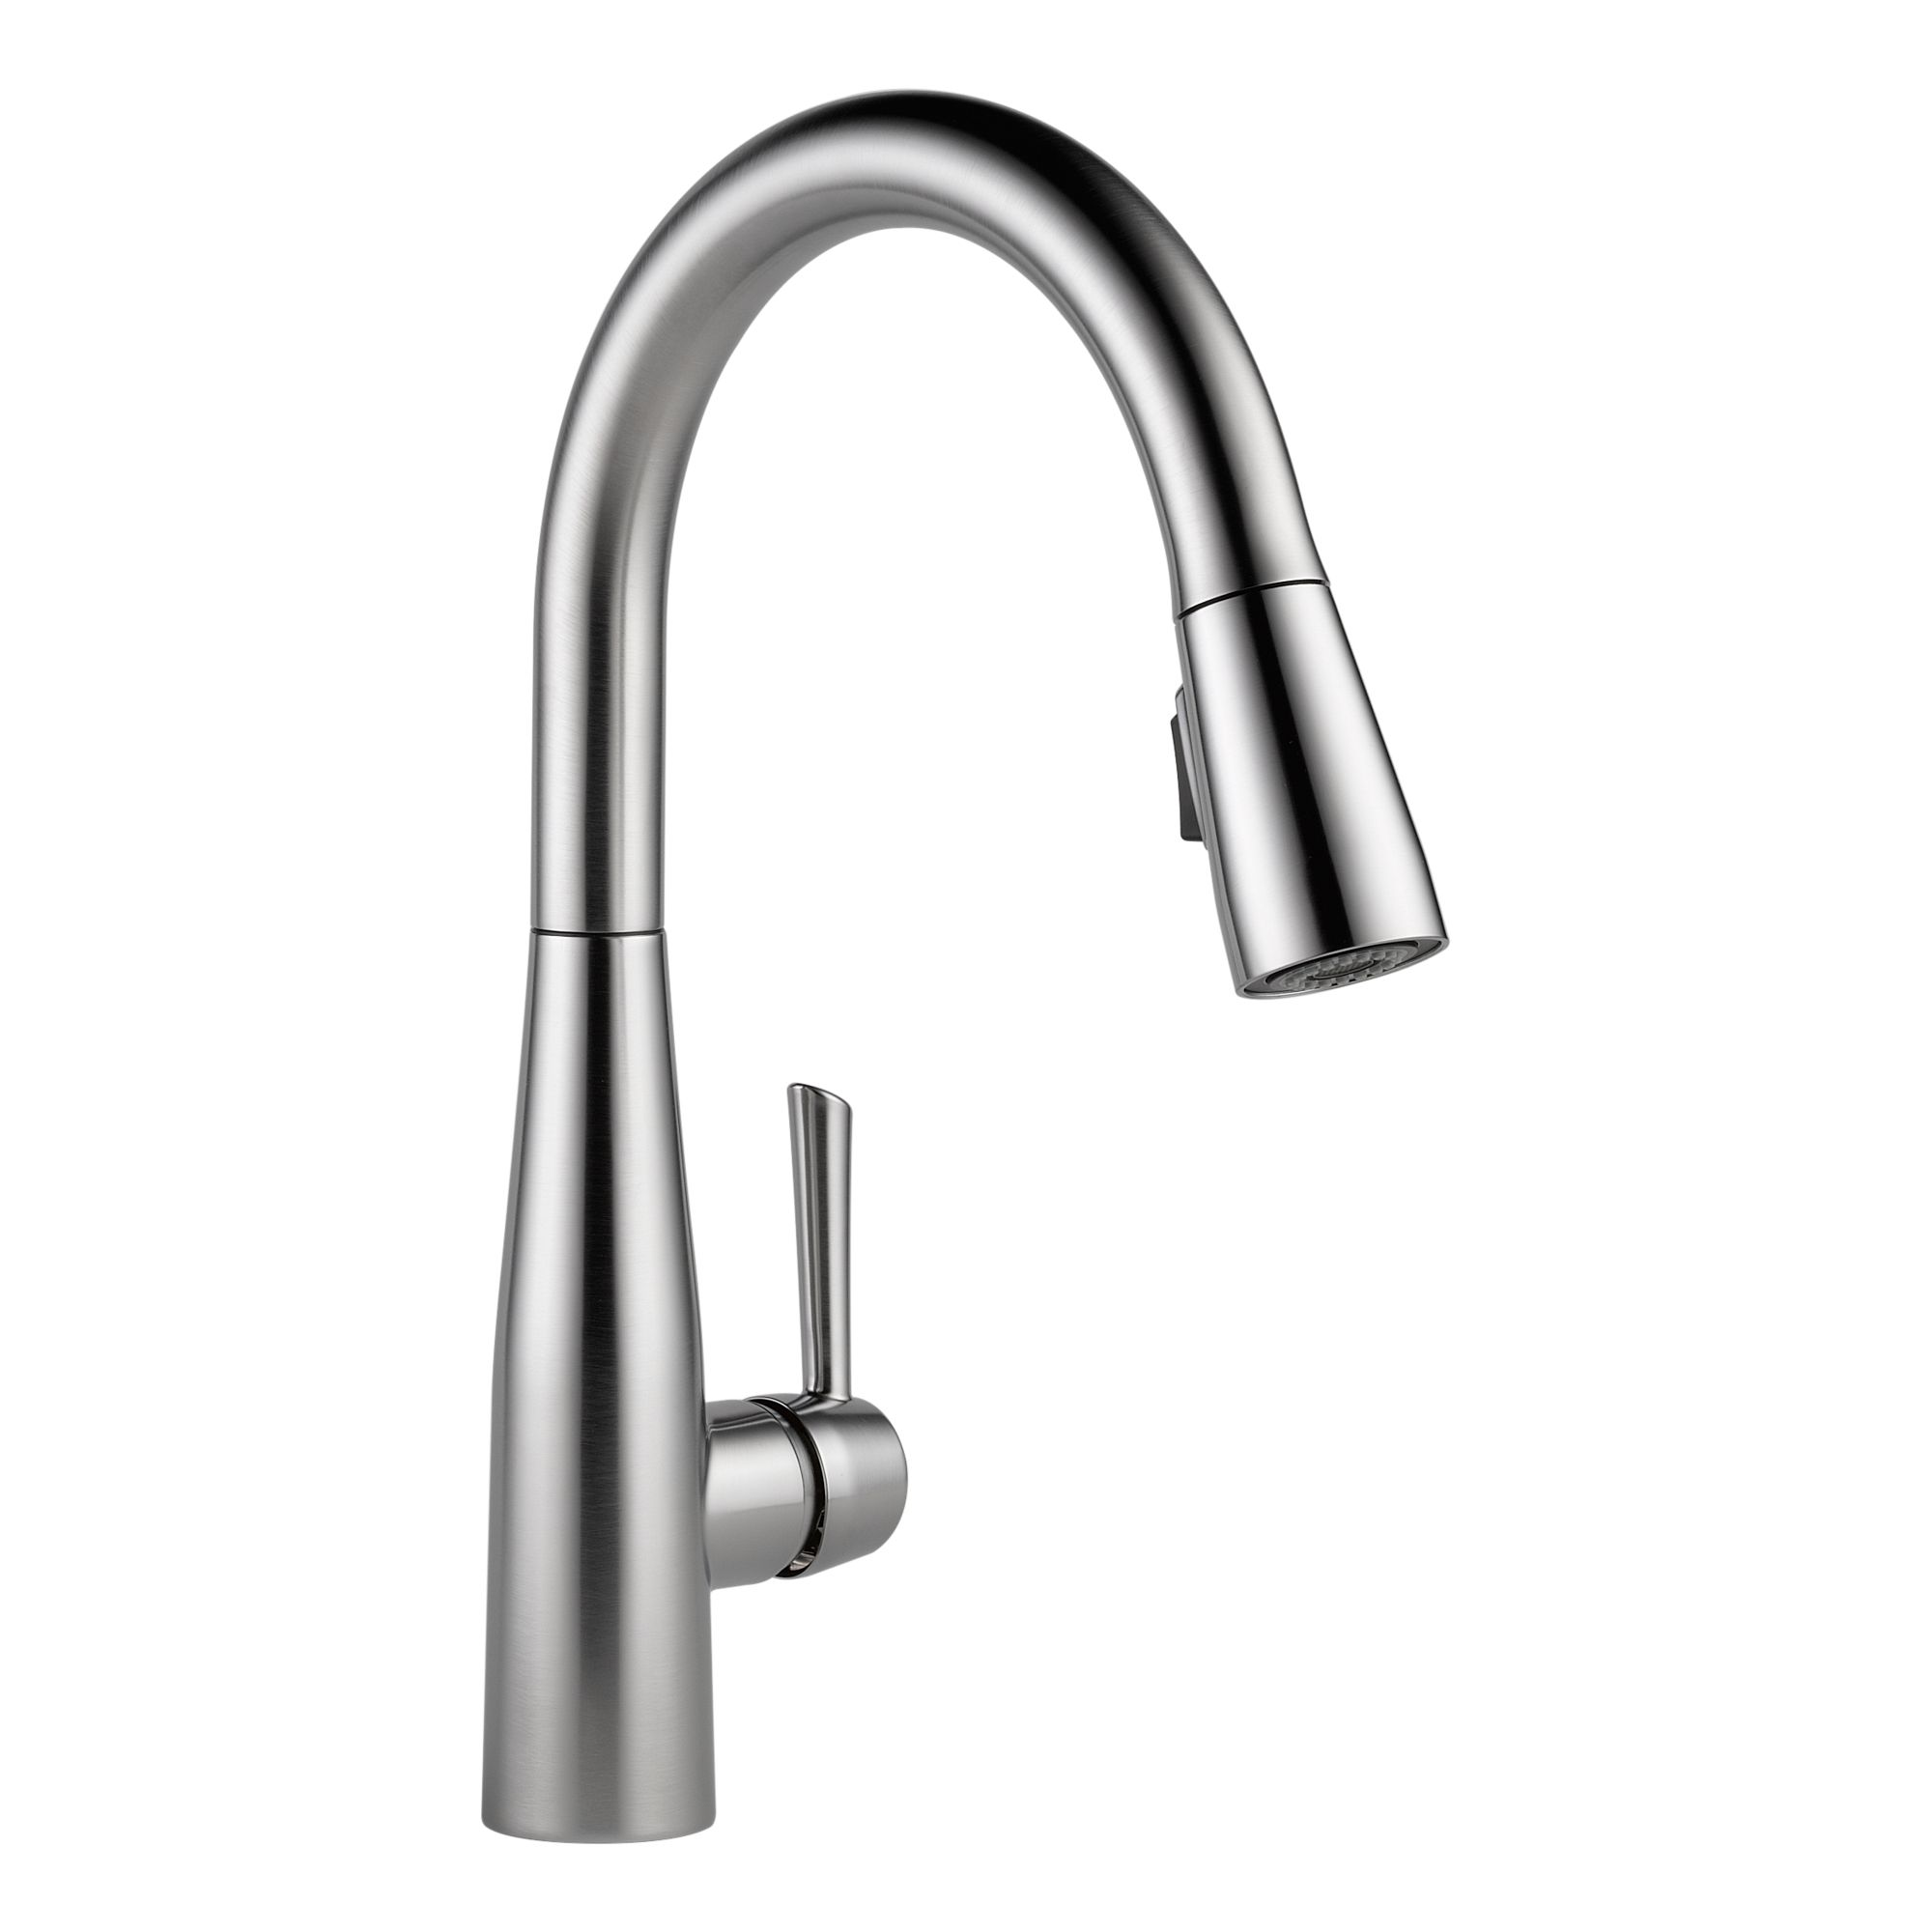 Essa Pull Down Kitchen Faucet With Magnetic Docking Spray Head   Includes  Lifetime Warranty